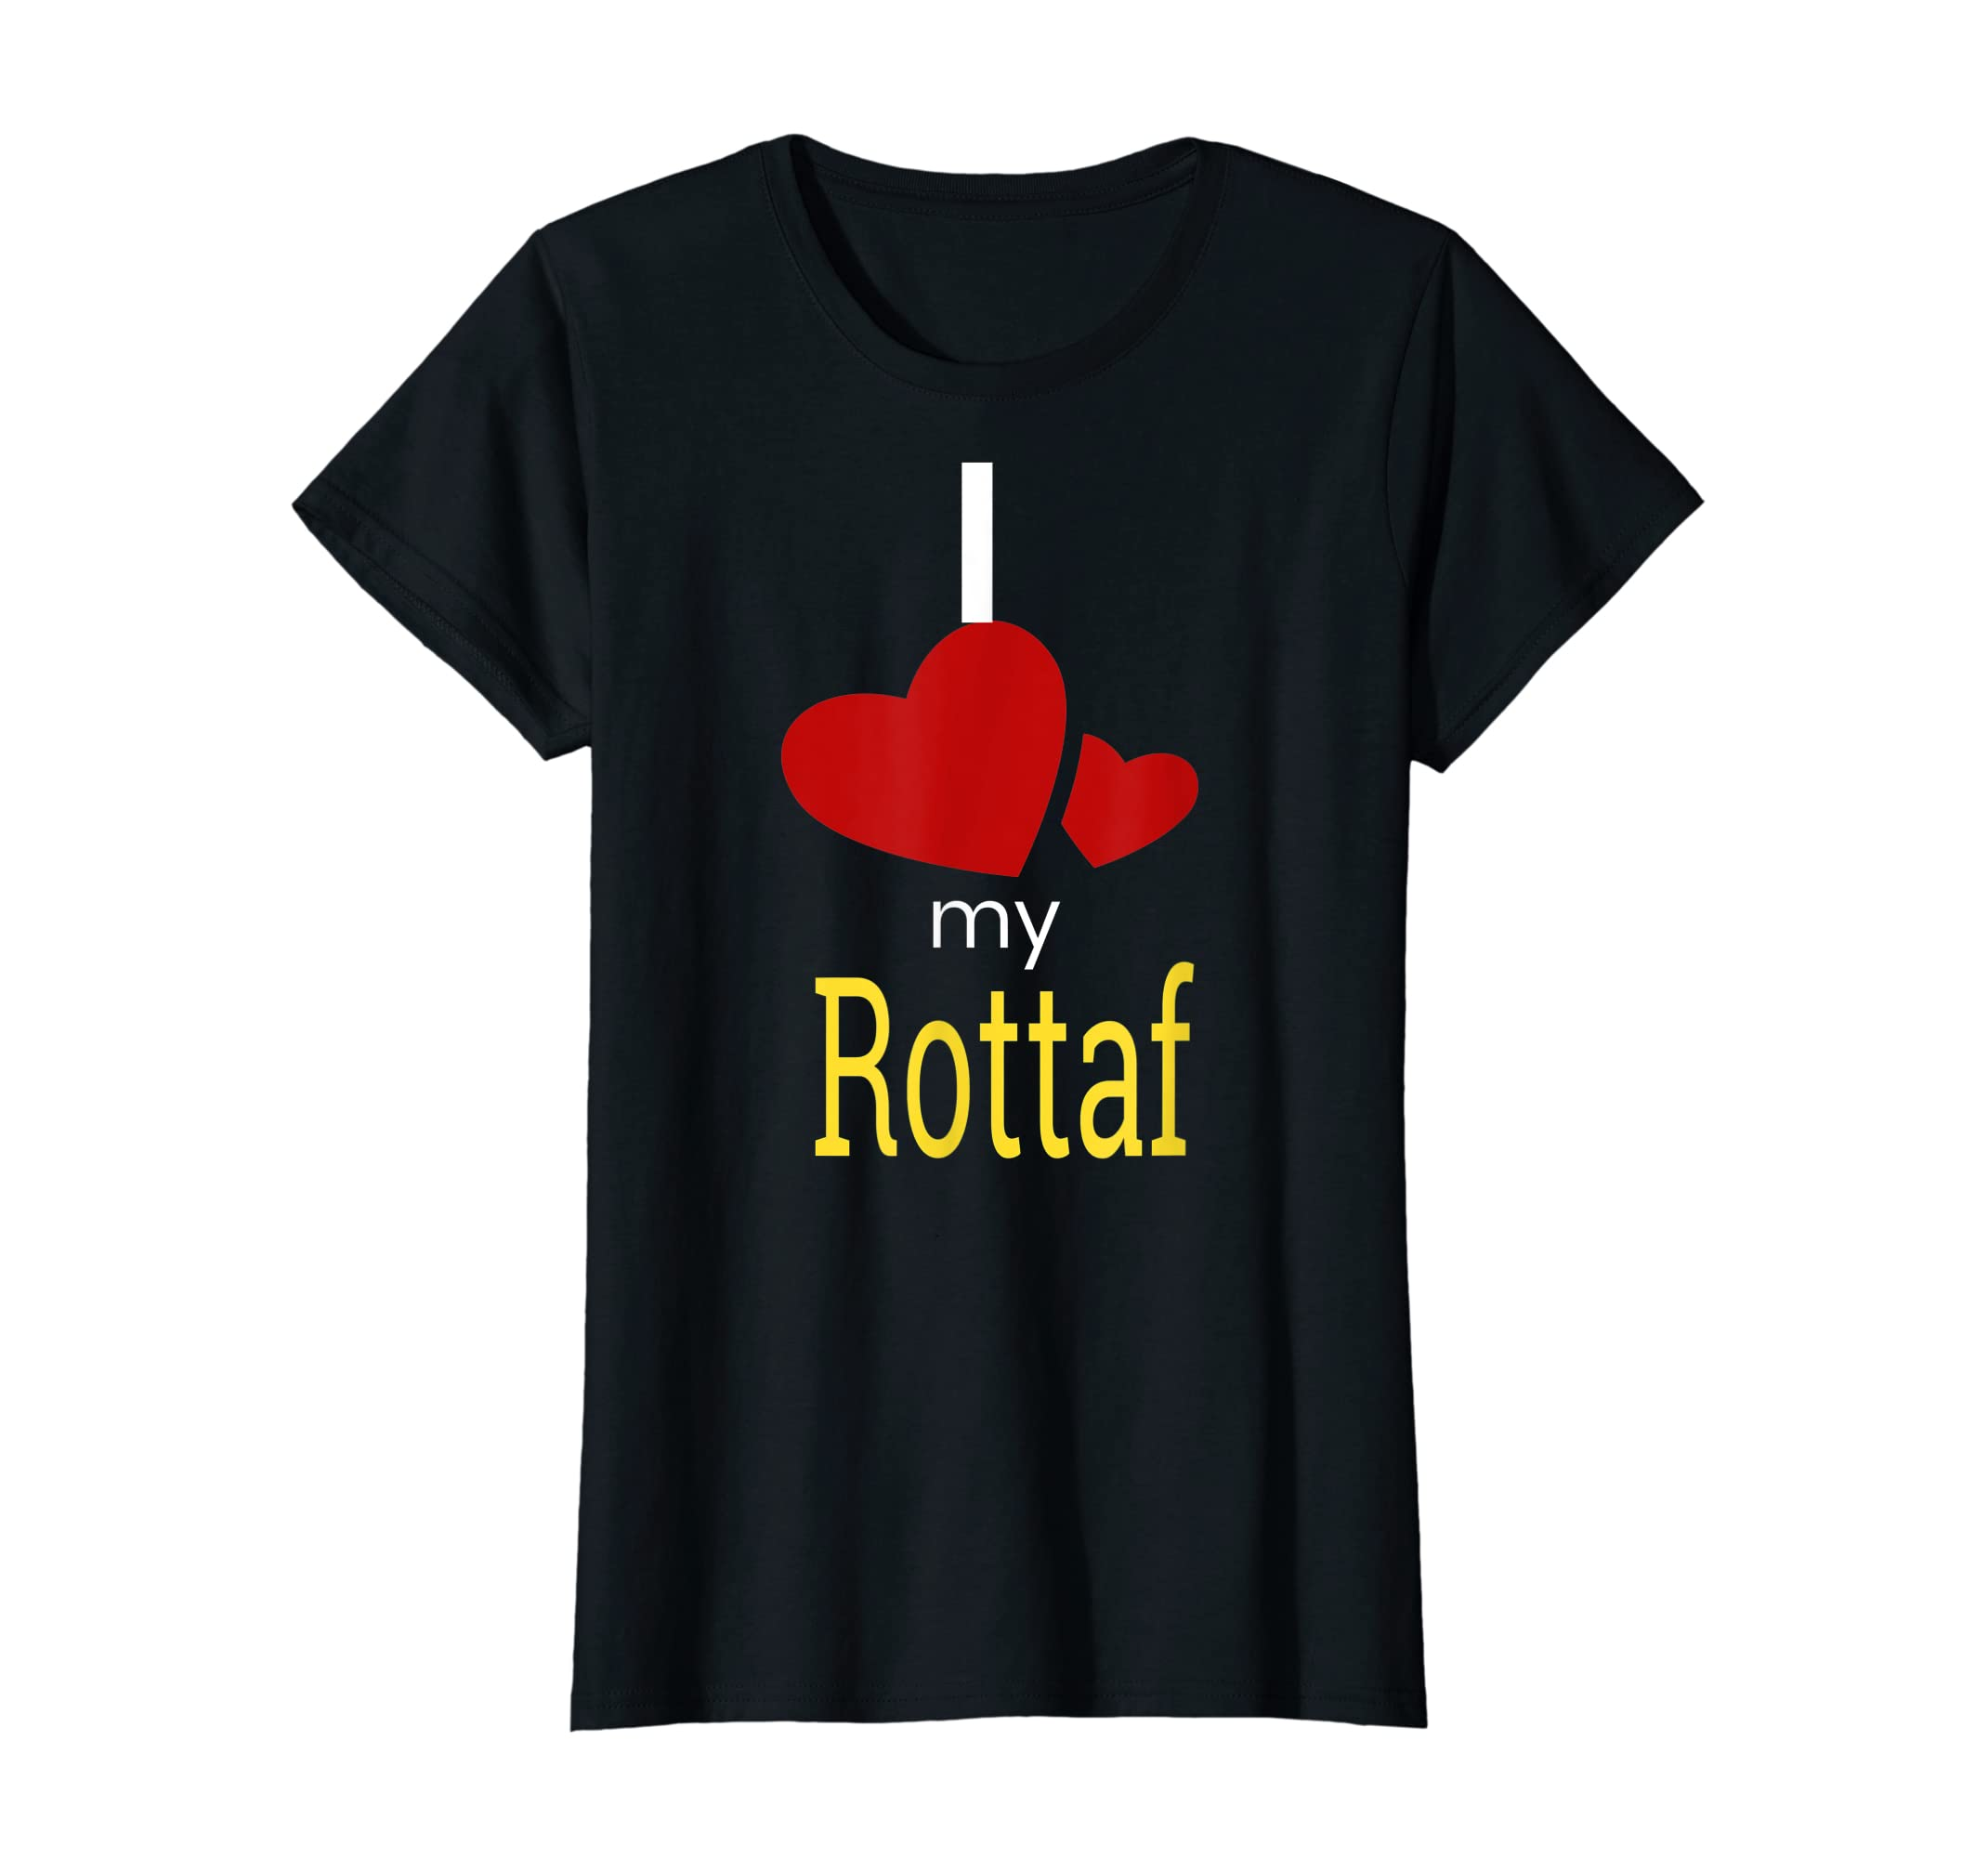 Rottaf Dog Shirt Love Rottweiler + Afghan Hound =  T-Shirt-Women's T-Shirt-Black